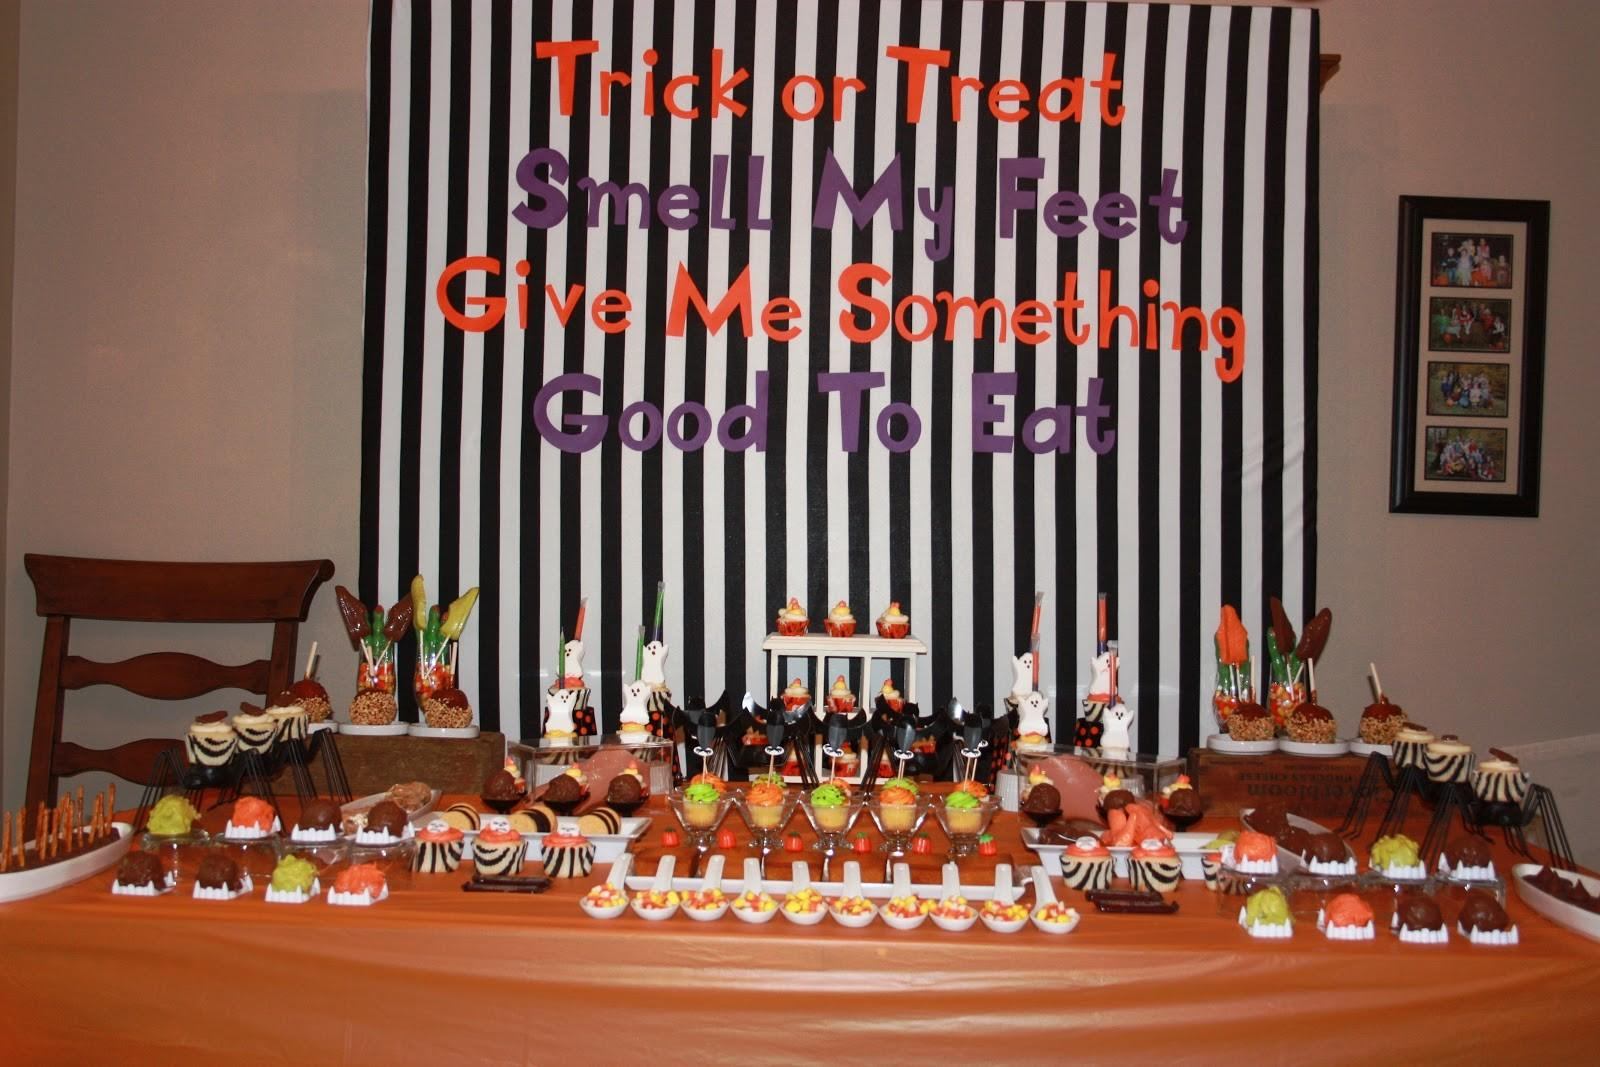 Gets Bored Easily Halloween Party Dessert Table